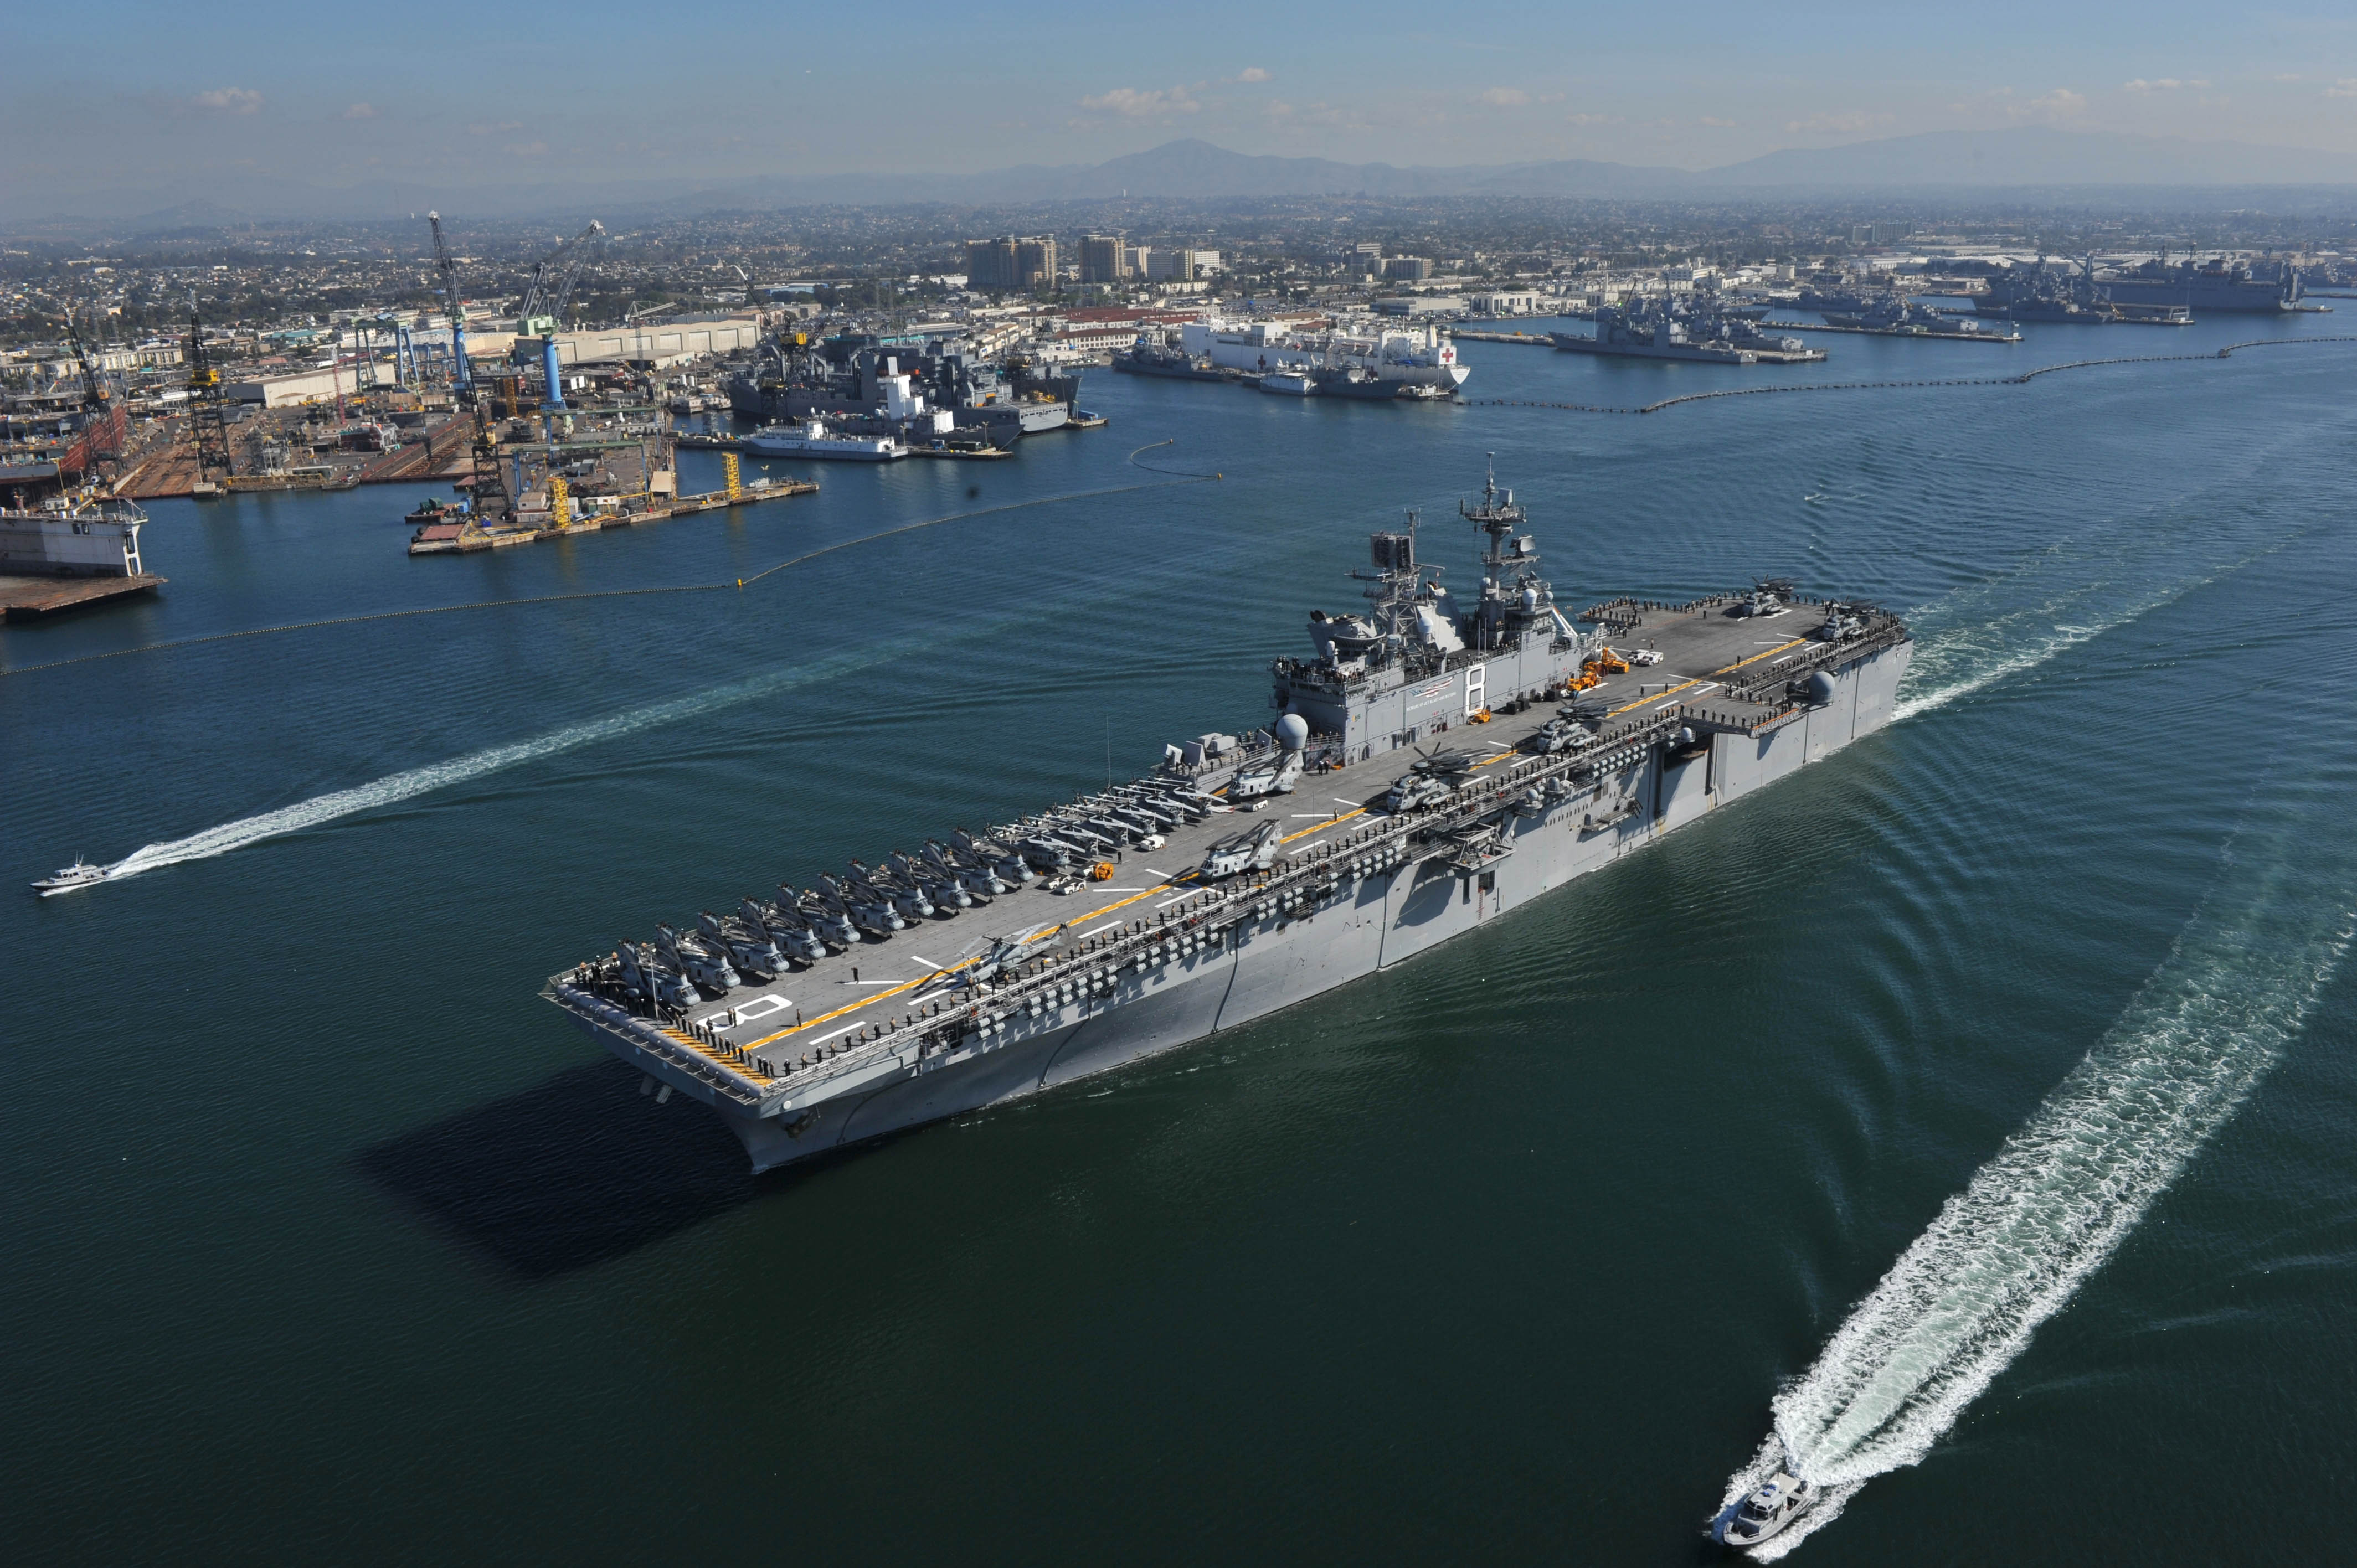 US_Navy_111114-N-KD852-030_The_amphibious_assault_ship_USS_Makin_Island_%28LHD_8%29_departs_Naval_Base_San_Diego_on_its_first_operational_deployment_to.jpg